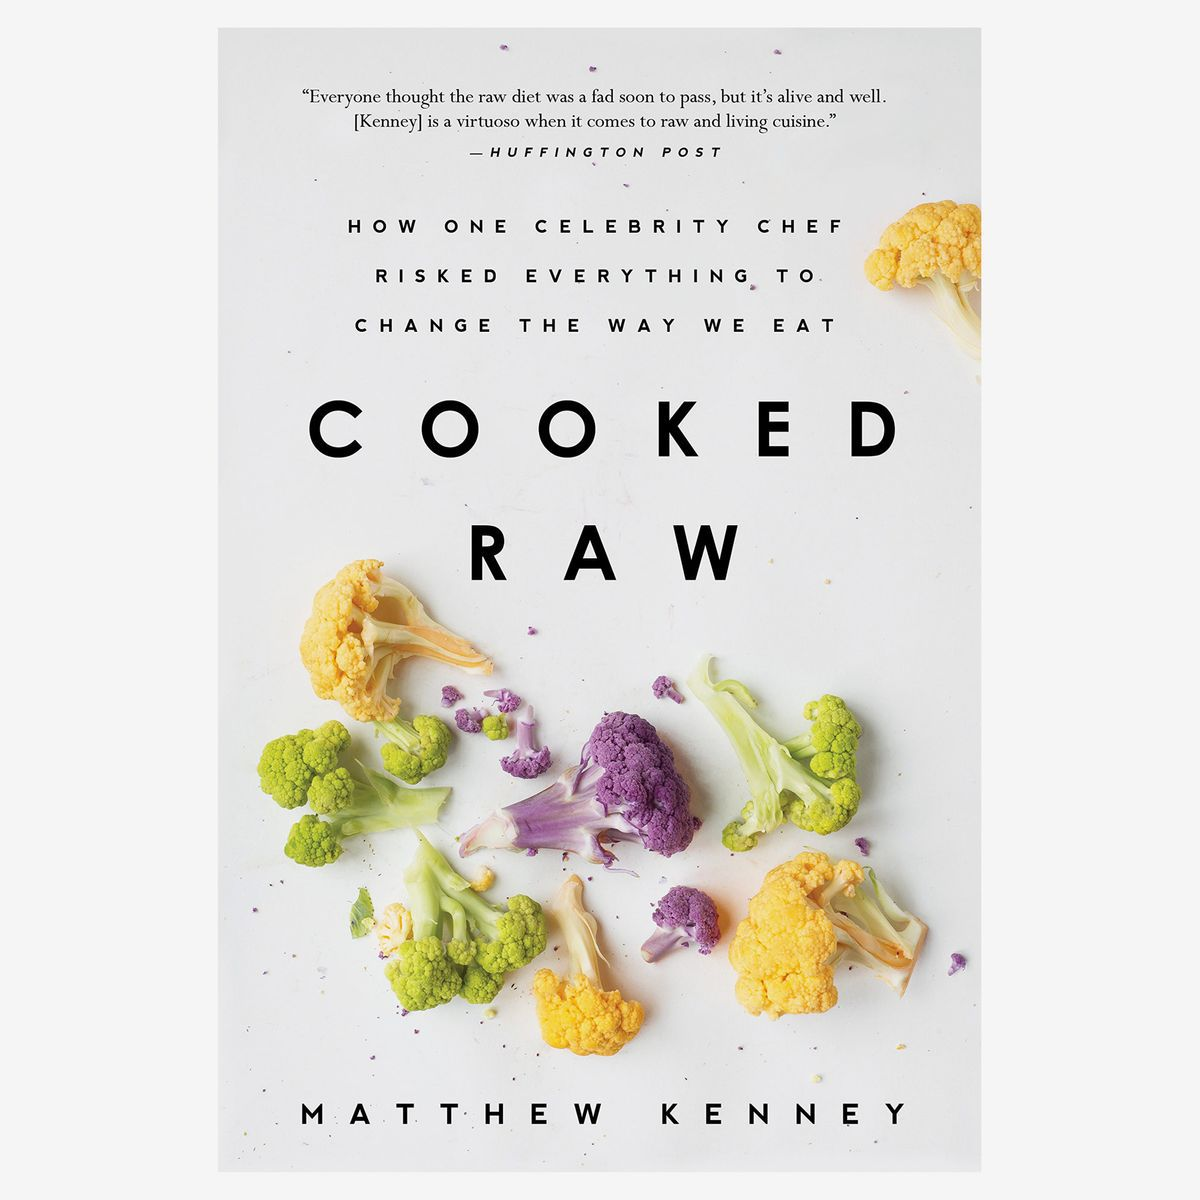 Cooked Raw cookbook cover